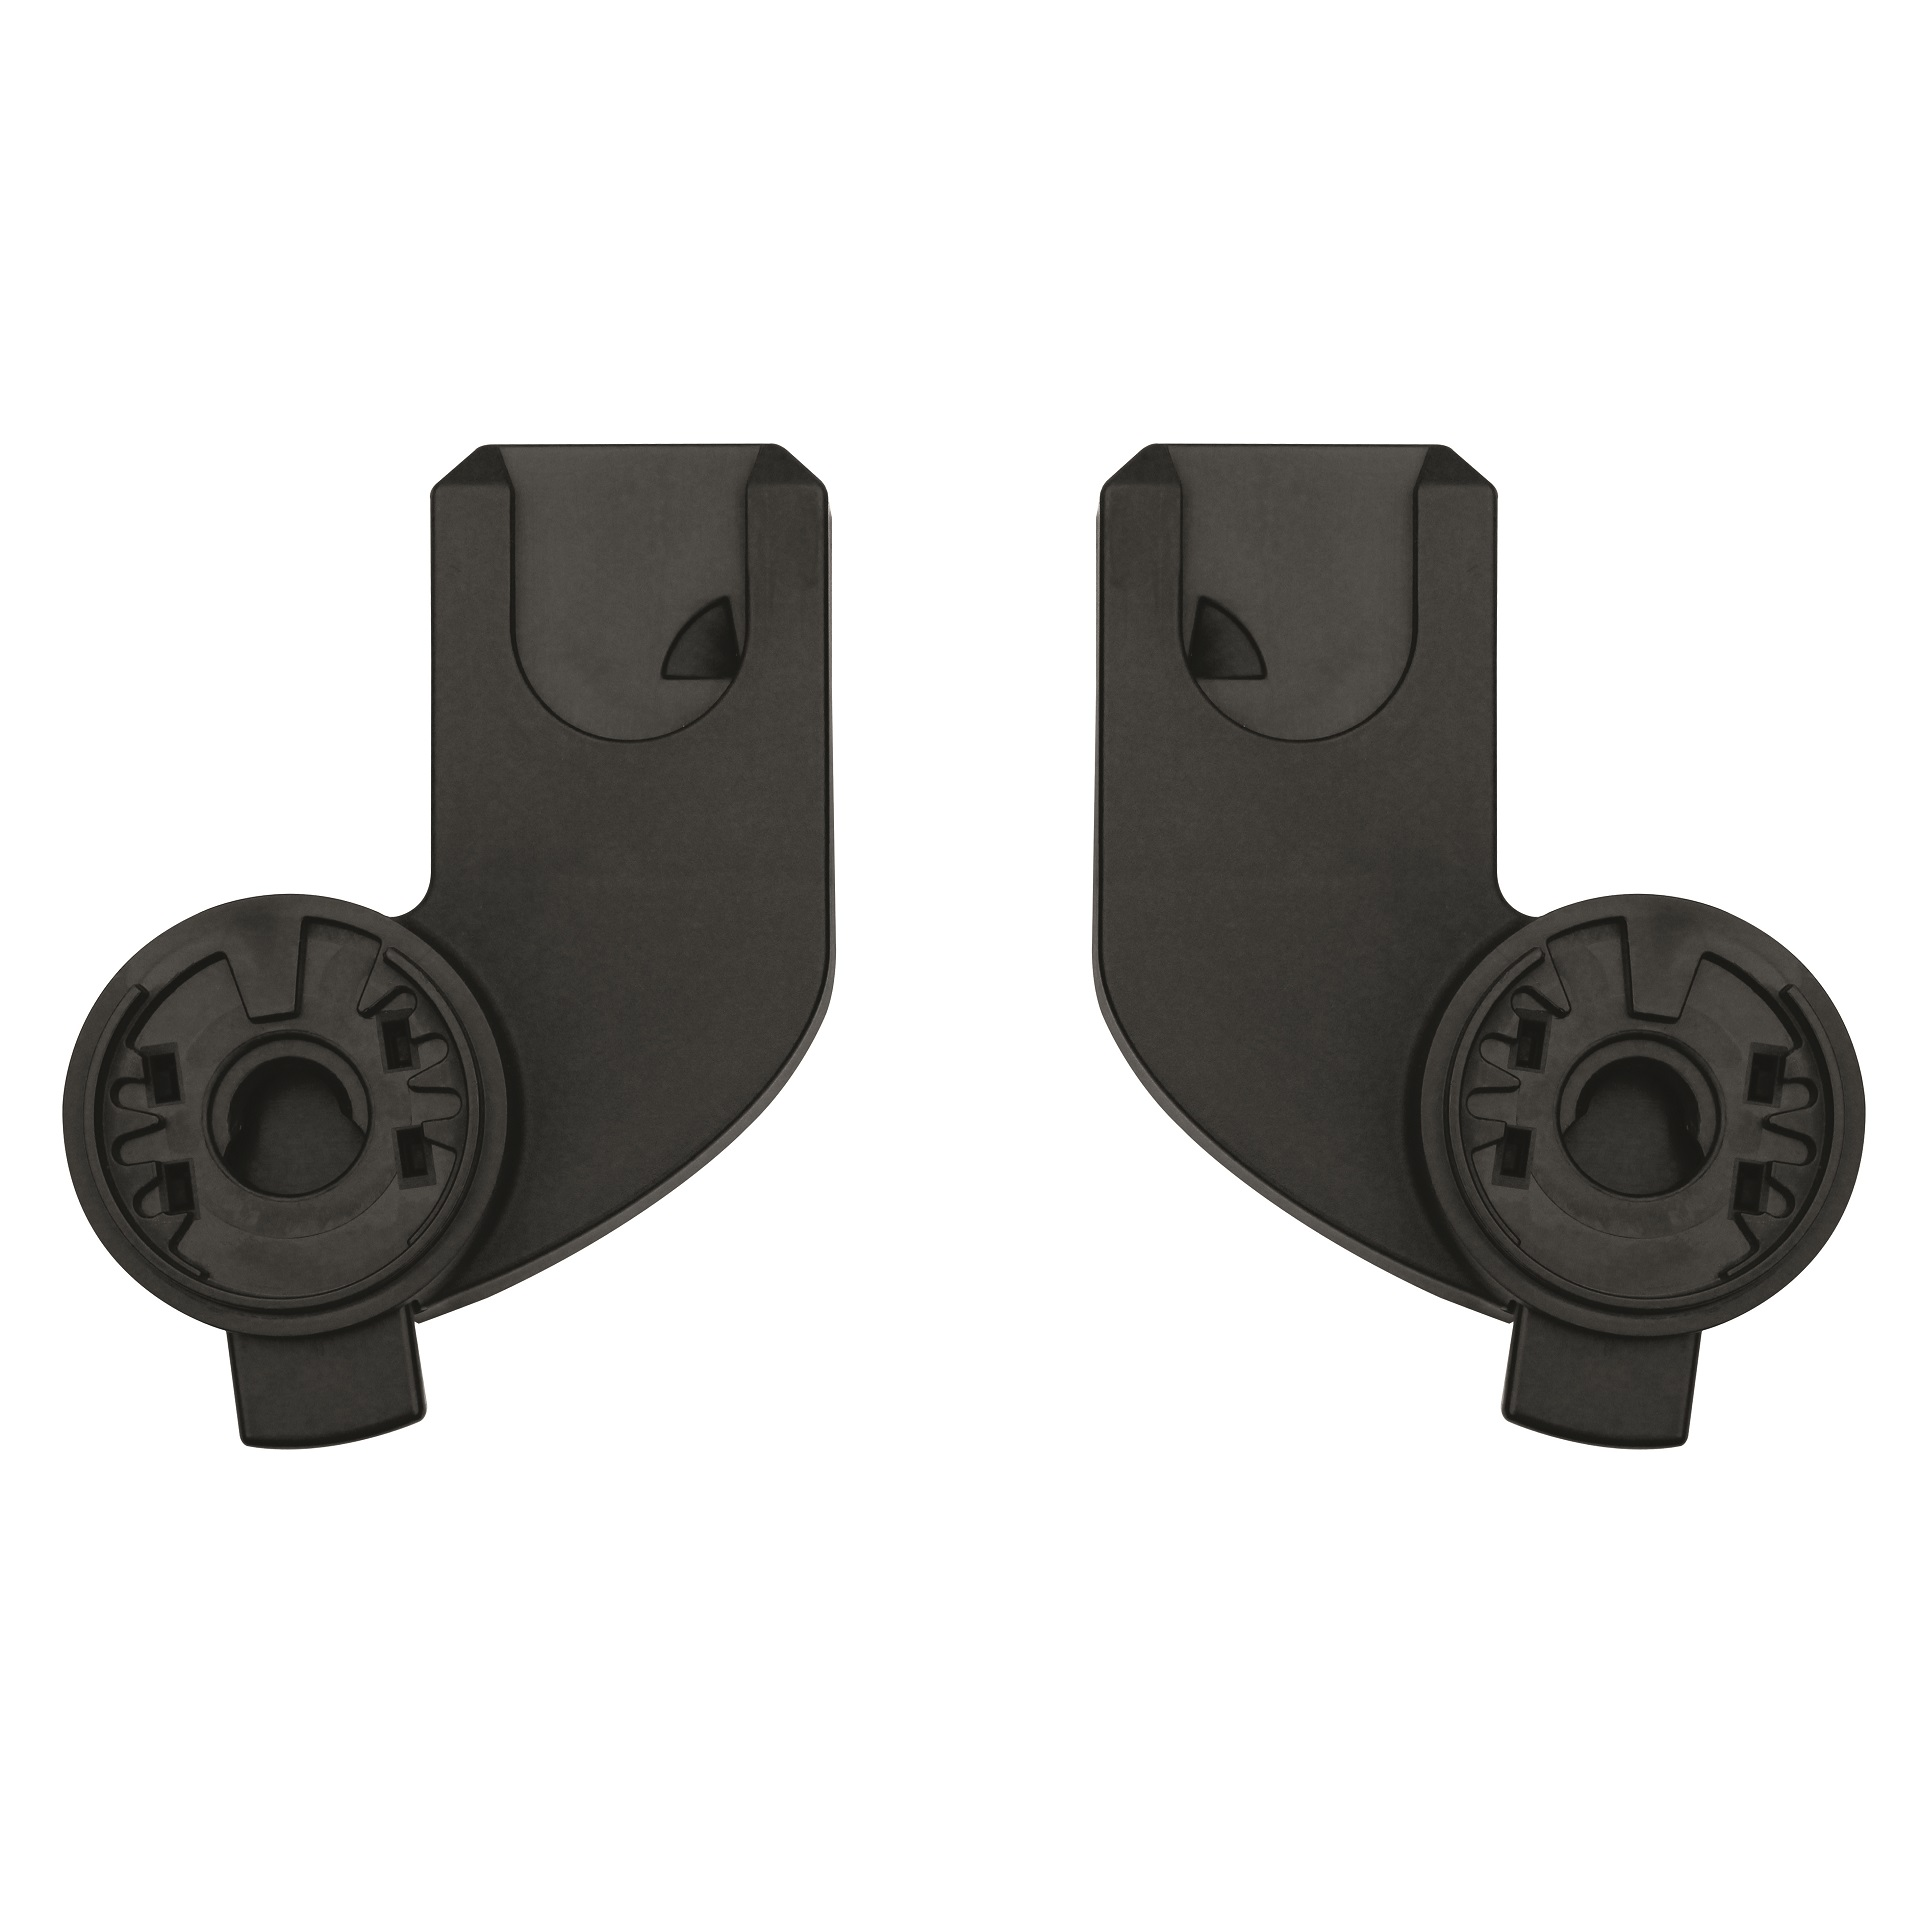 Black Quinny Zapp Xtra Stroller Replacement Car Seat Adapters